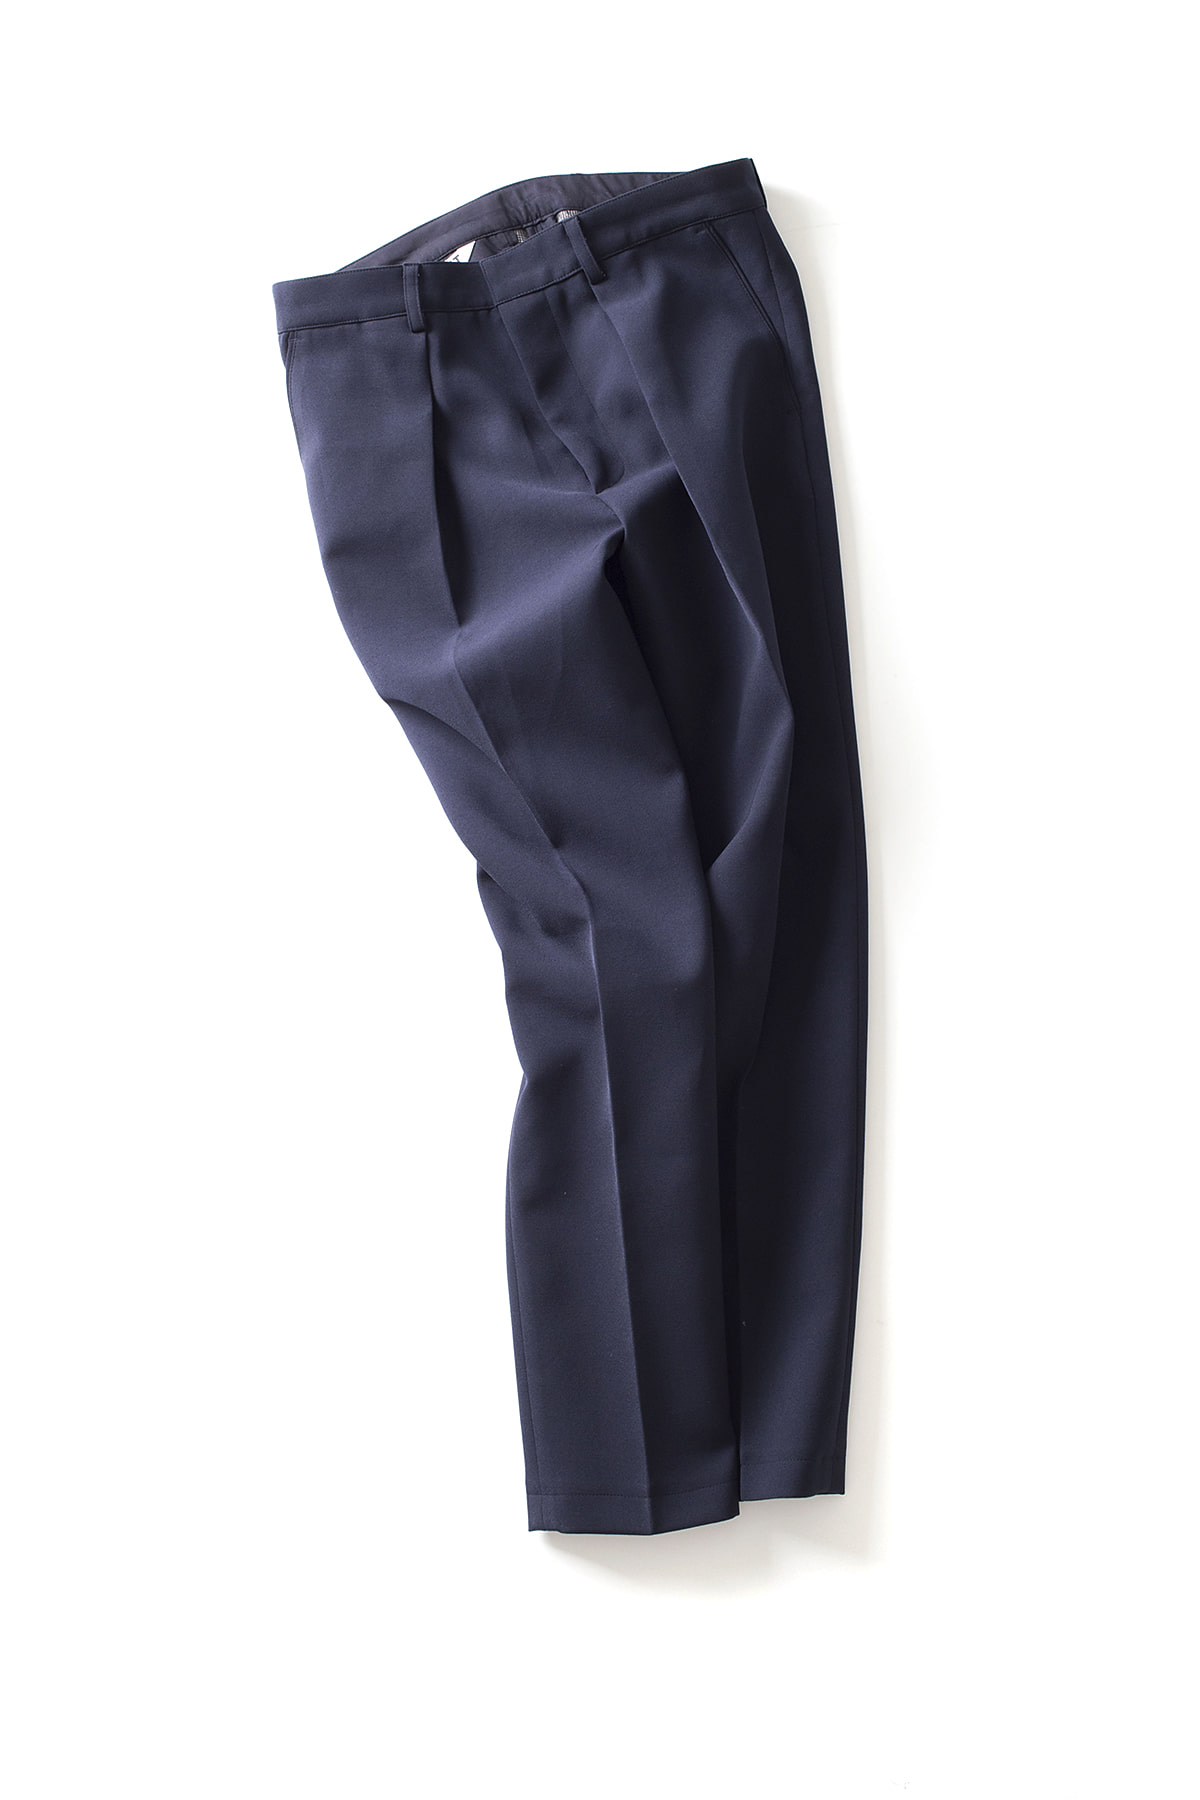 BIRTHDAYSUIT : Weekend Pants (Navy)